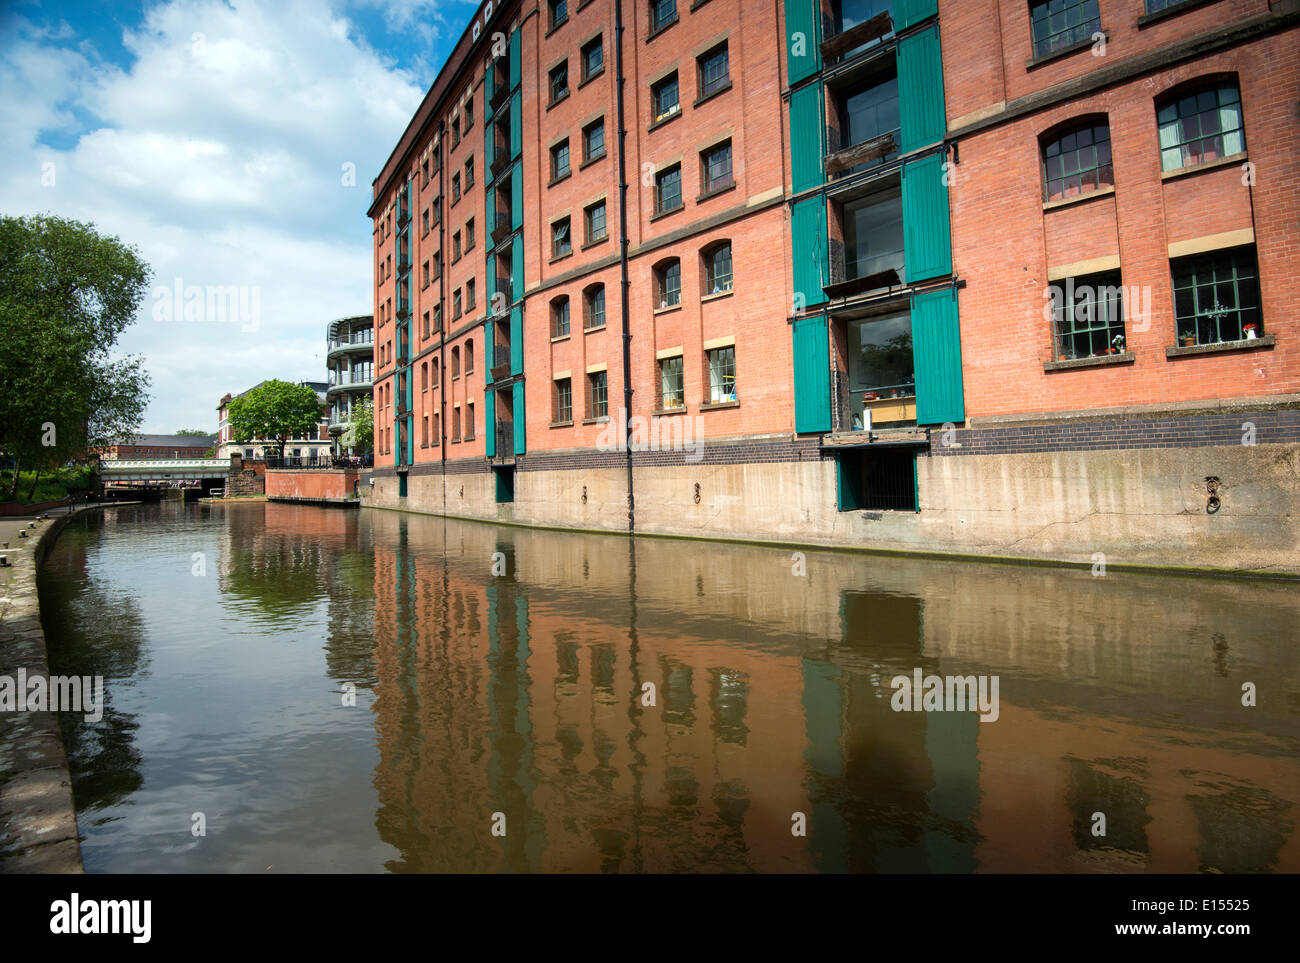 Reflections of the British Waterways Building in the canal in Nottingham City, Nottinghamshire England UK - Stock Image